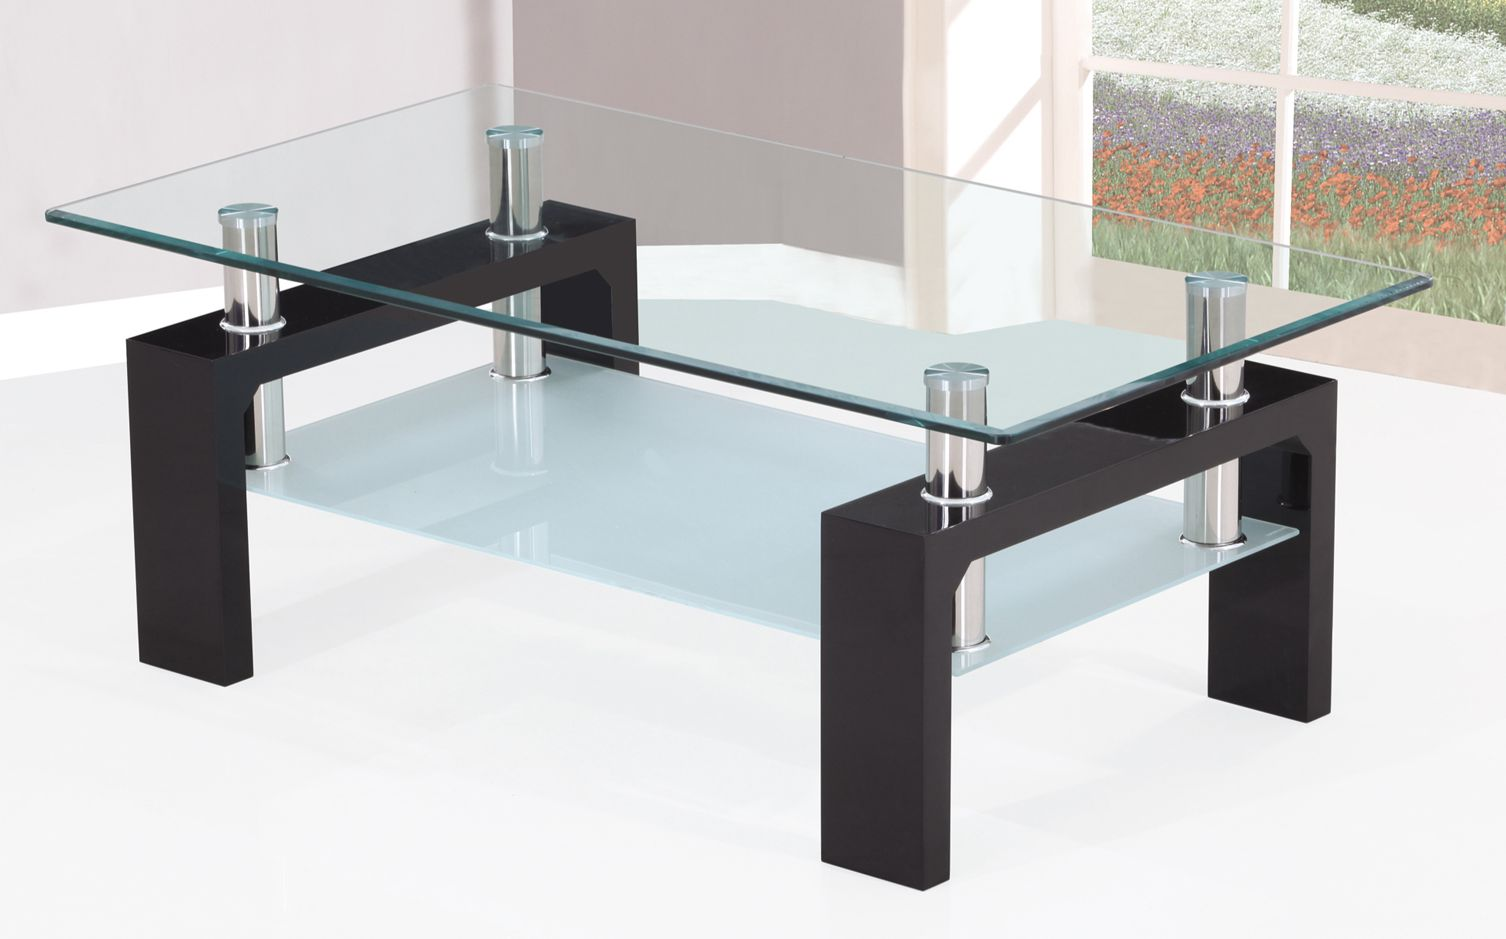 - Hot Sale 2016 Latest Popular Tempered Glass Coffee Table A-037p